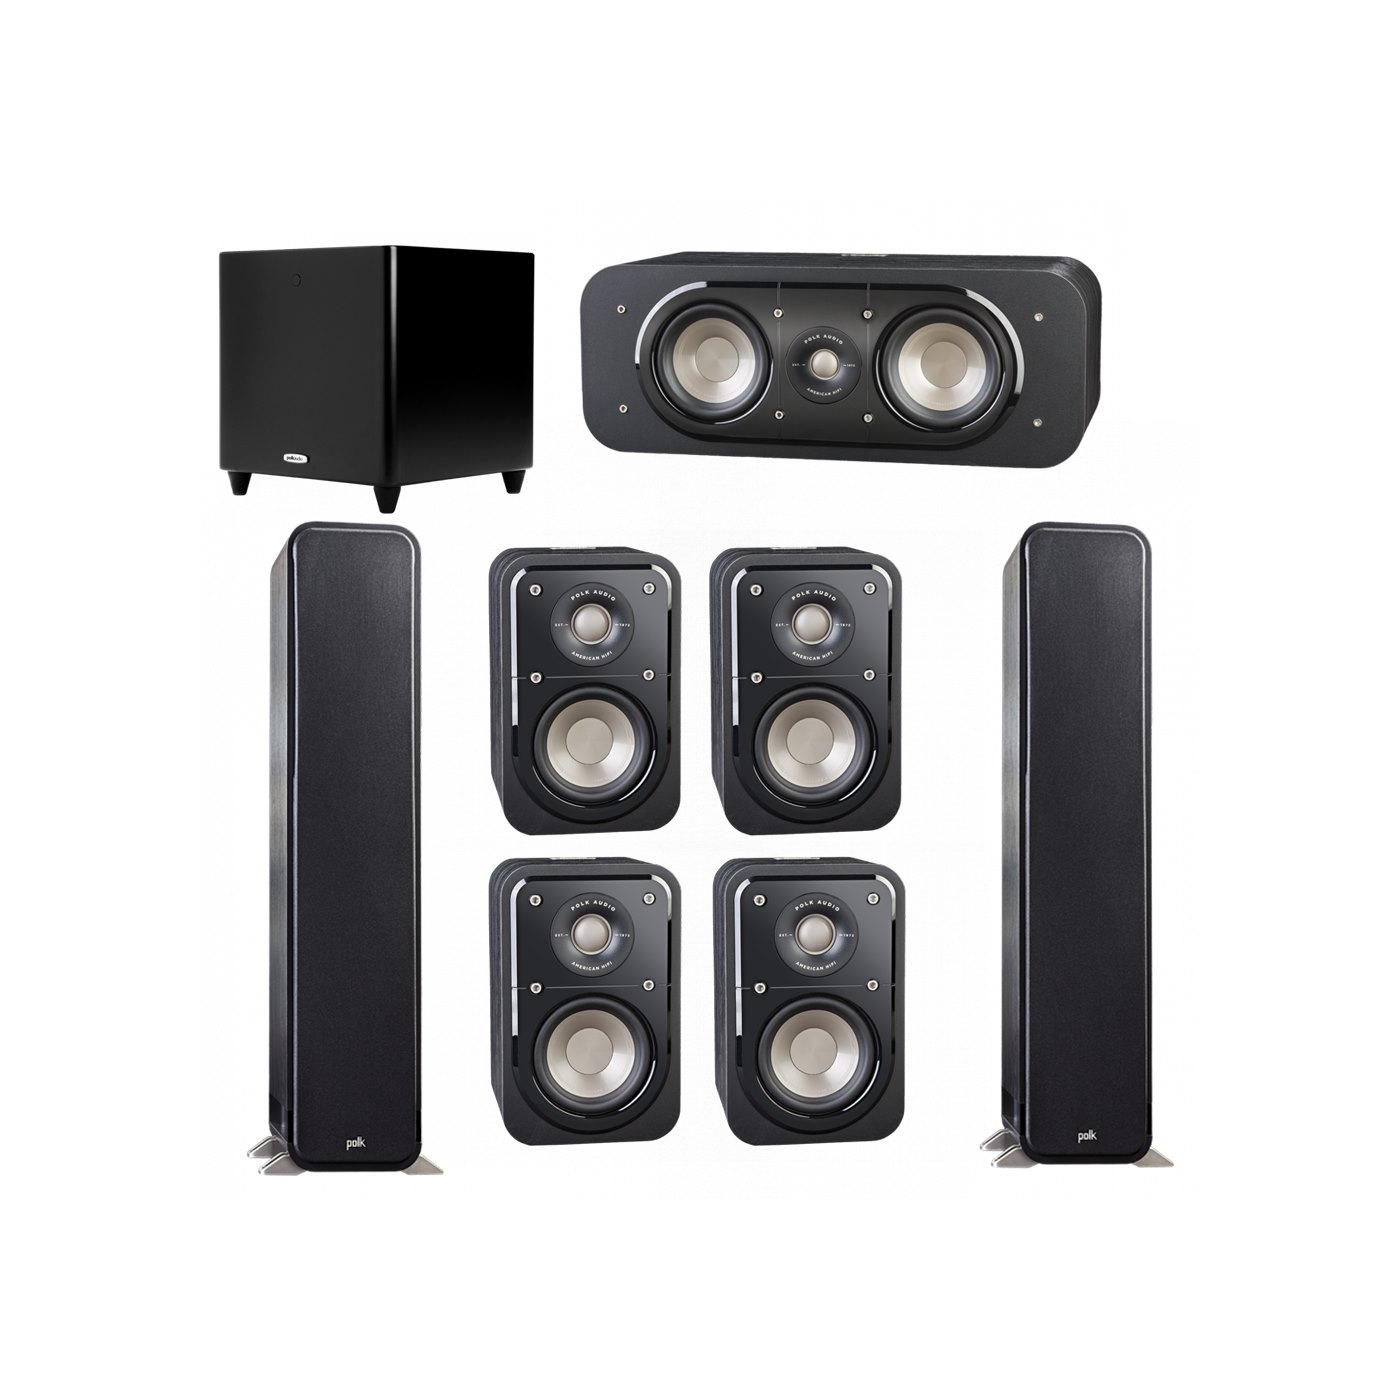 Polk Audio Signature 7.1 System with 2 S55 Tower Speaker, 1 Polk S30 Center Speaker, 4 Polk S10 Bookshelf Speaker, 1 Polk DSW PRO 550 wi Subwoofer